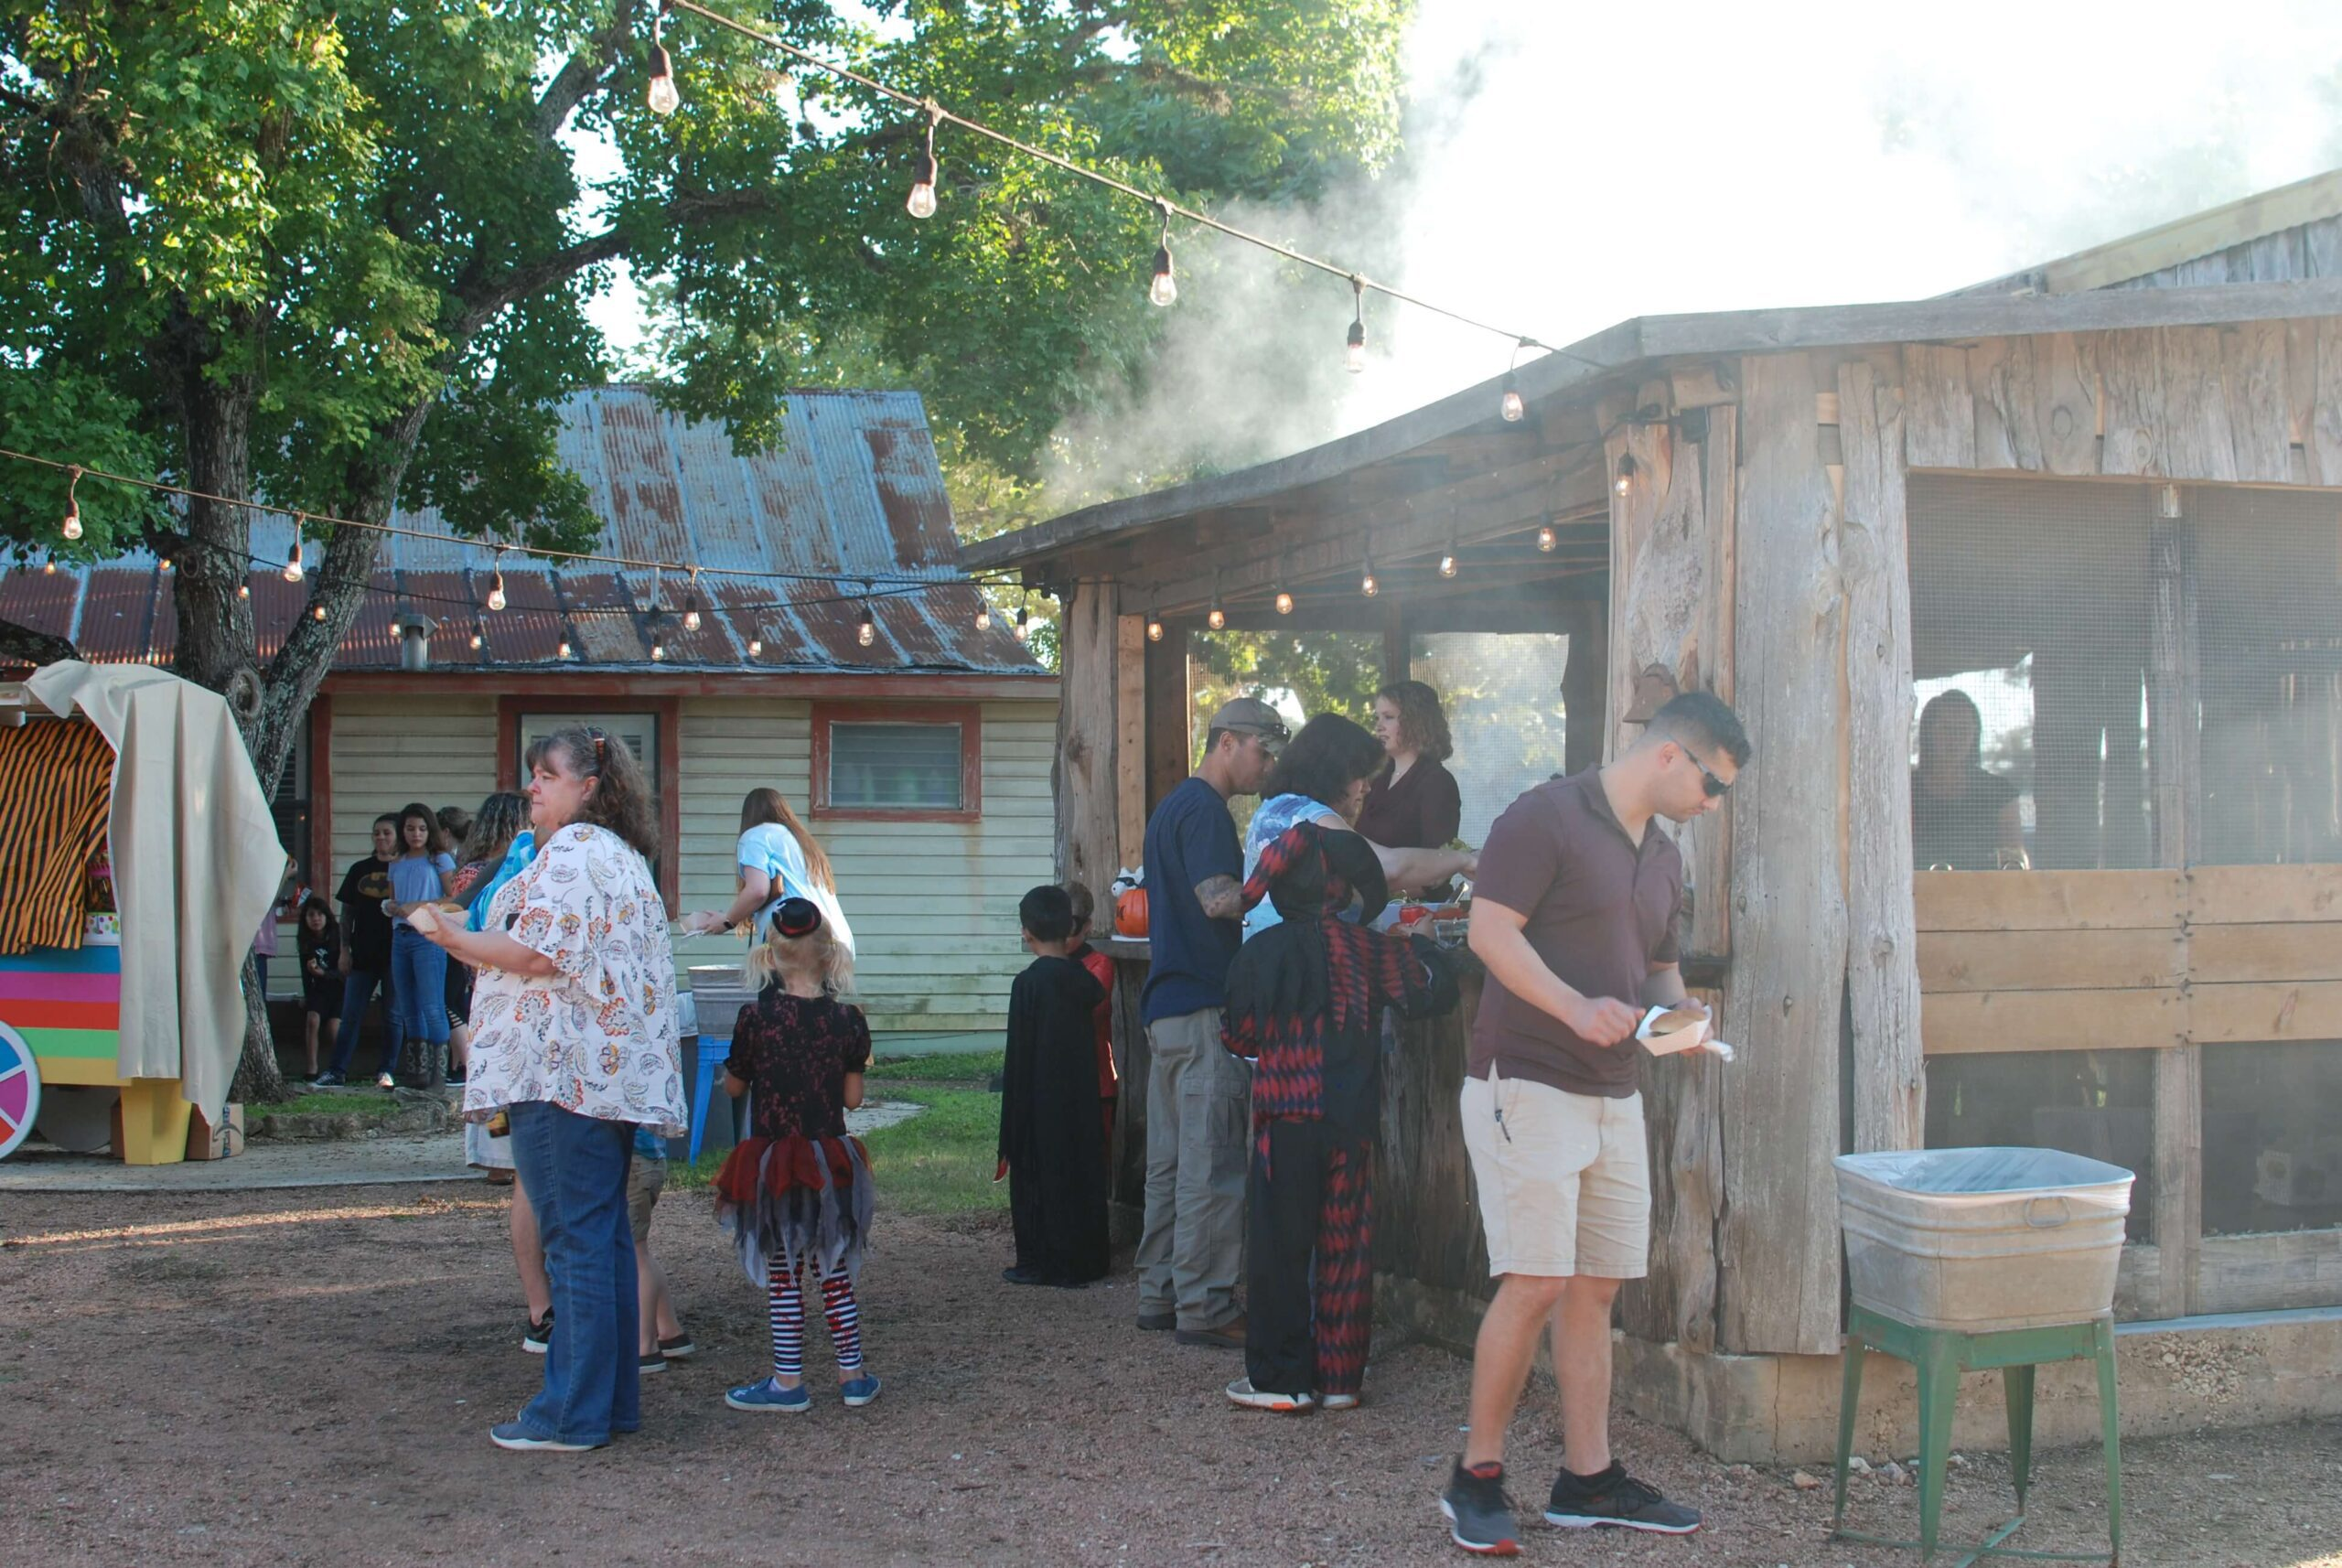 BBQ buffet line for a company picnic at Enchanted Springs Ranch